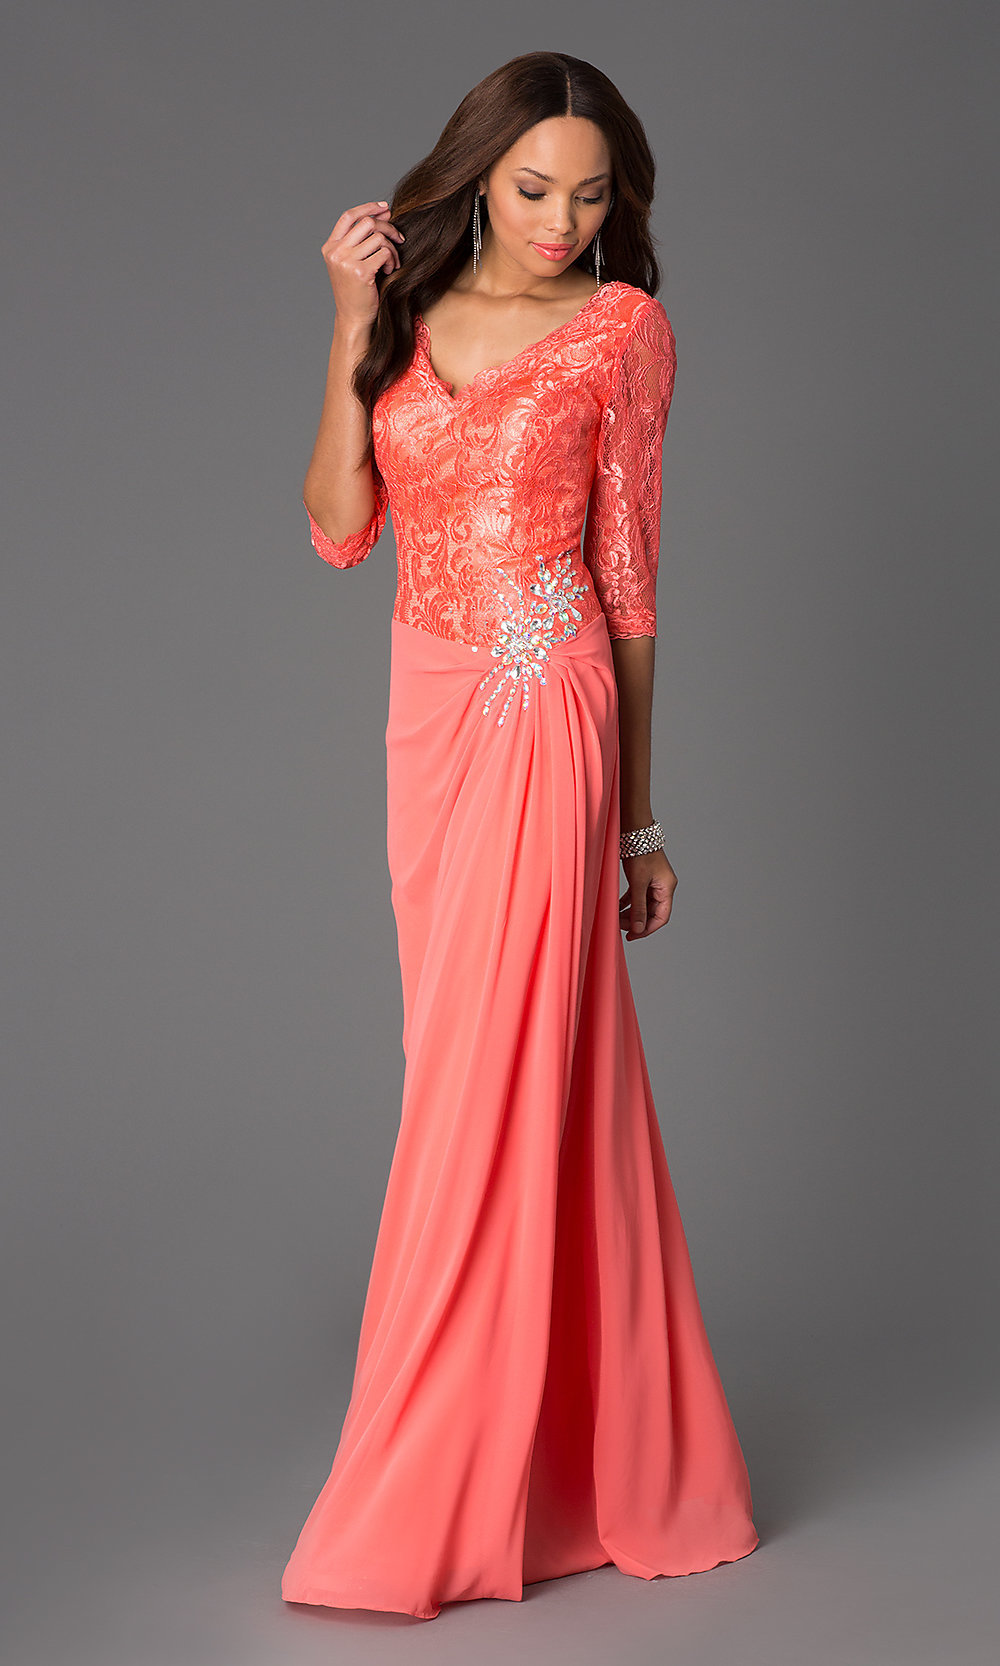 Orange Prom Dresses and Short Party Dresses - p1 (by 32 - low price)